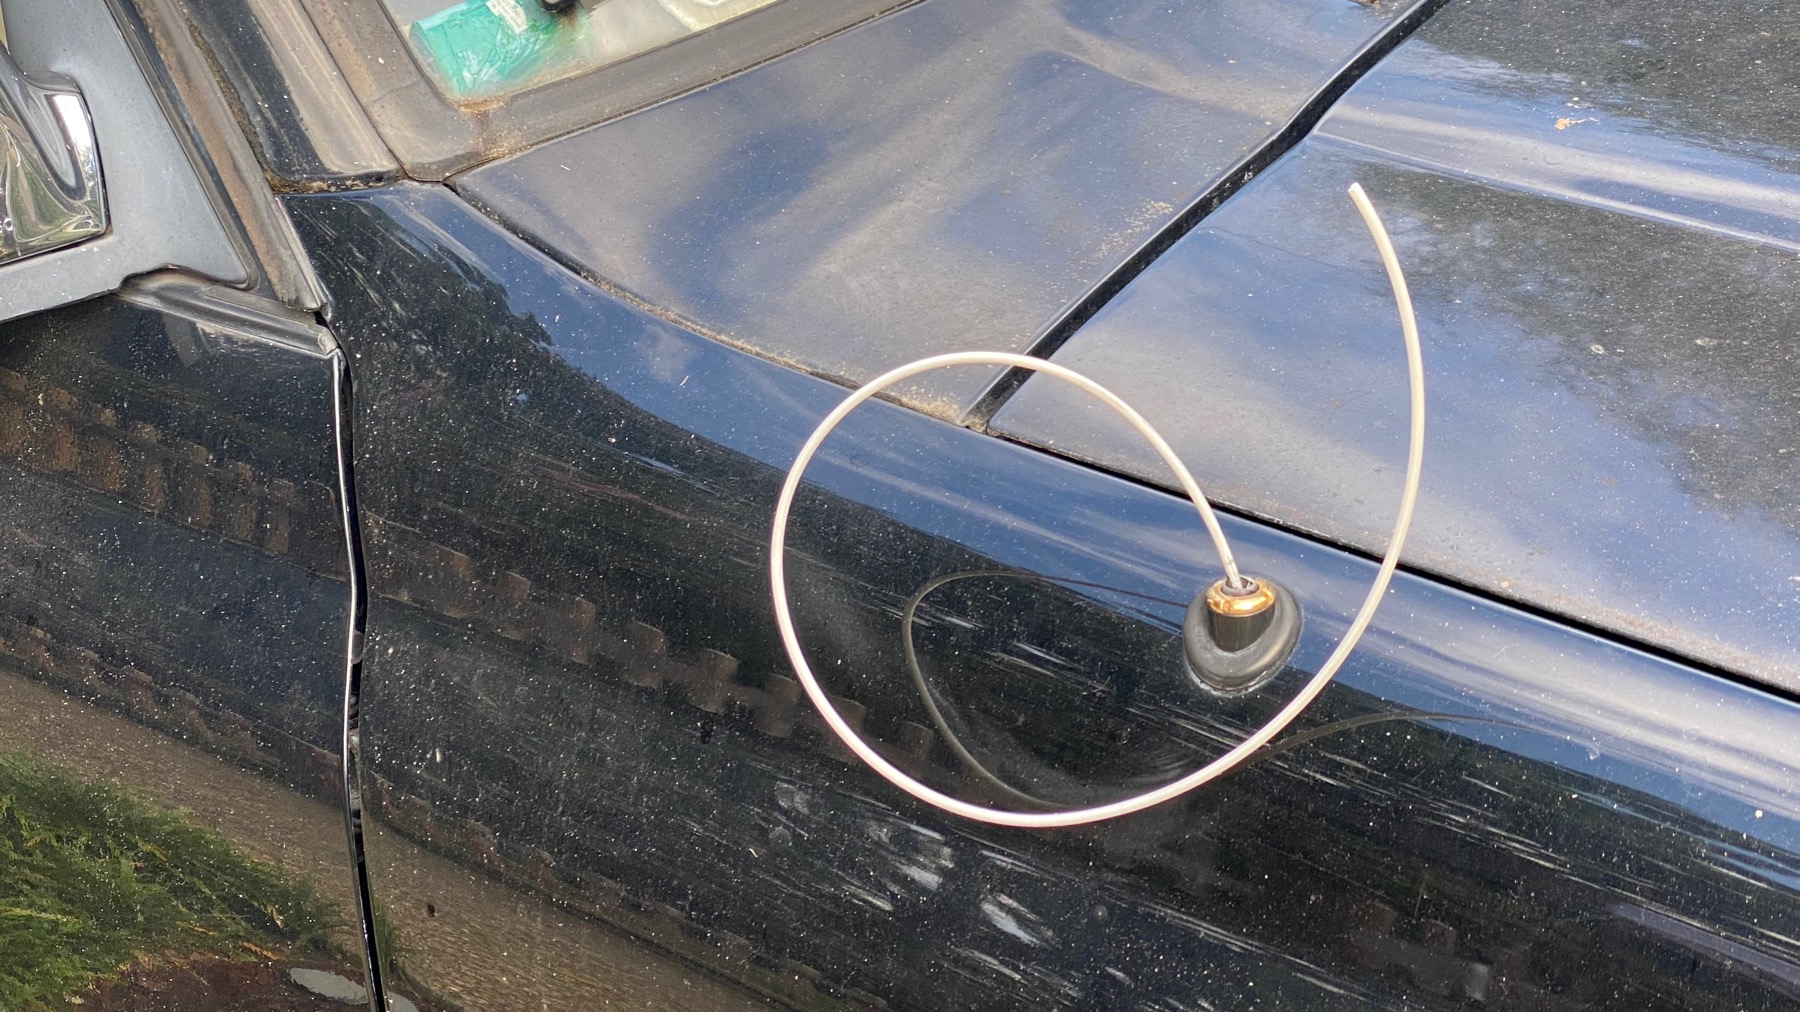 Oops antenna